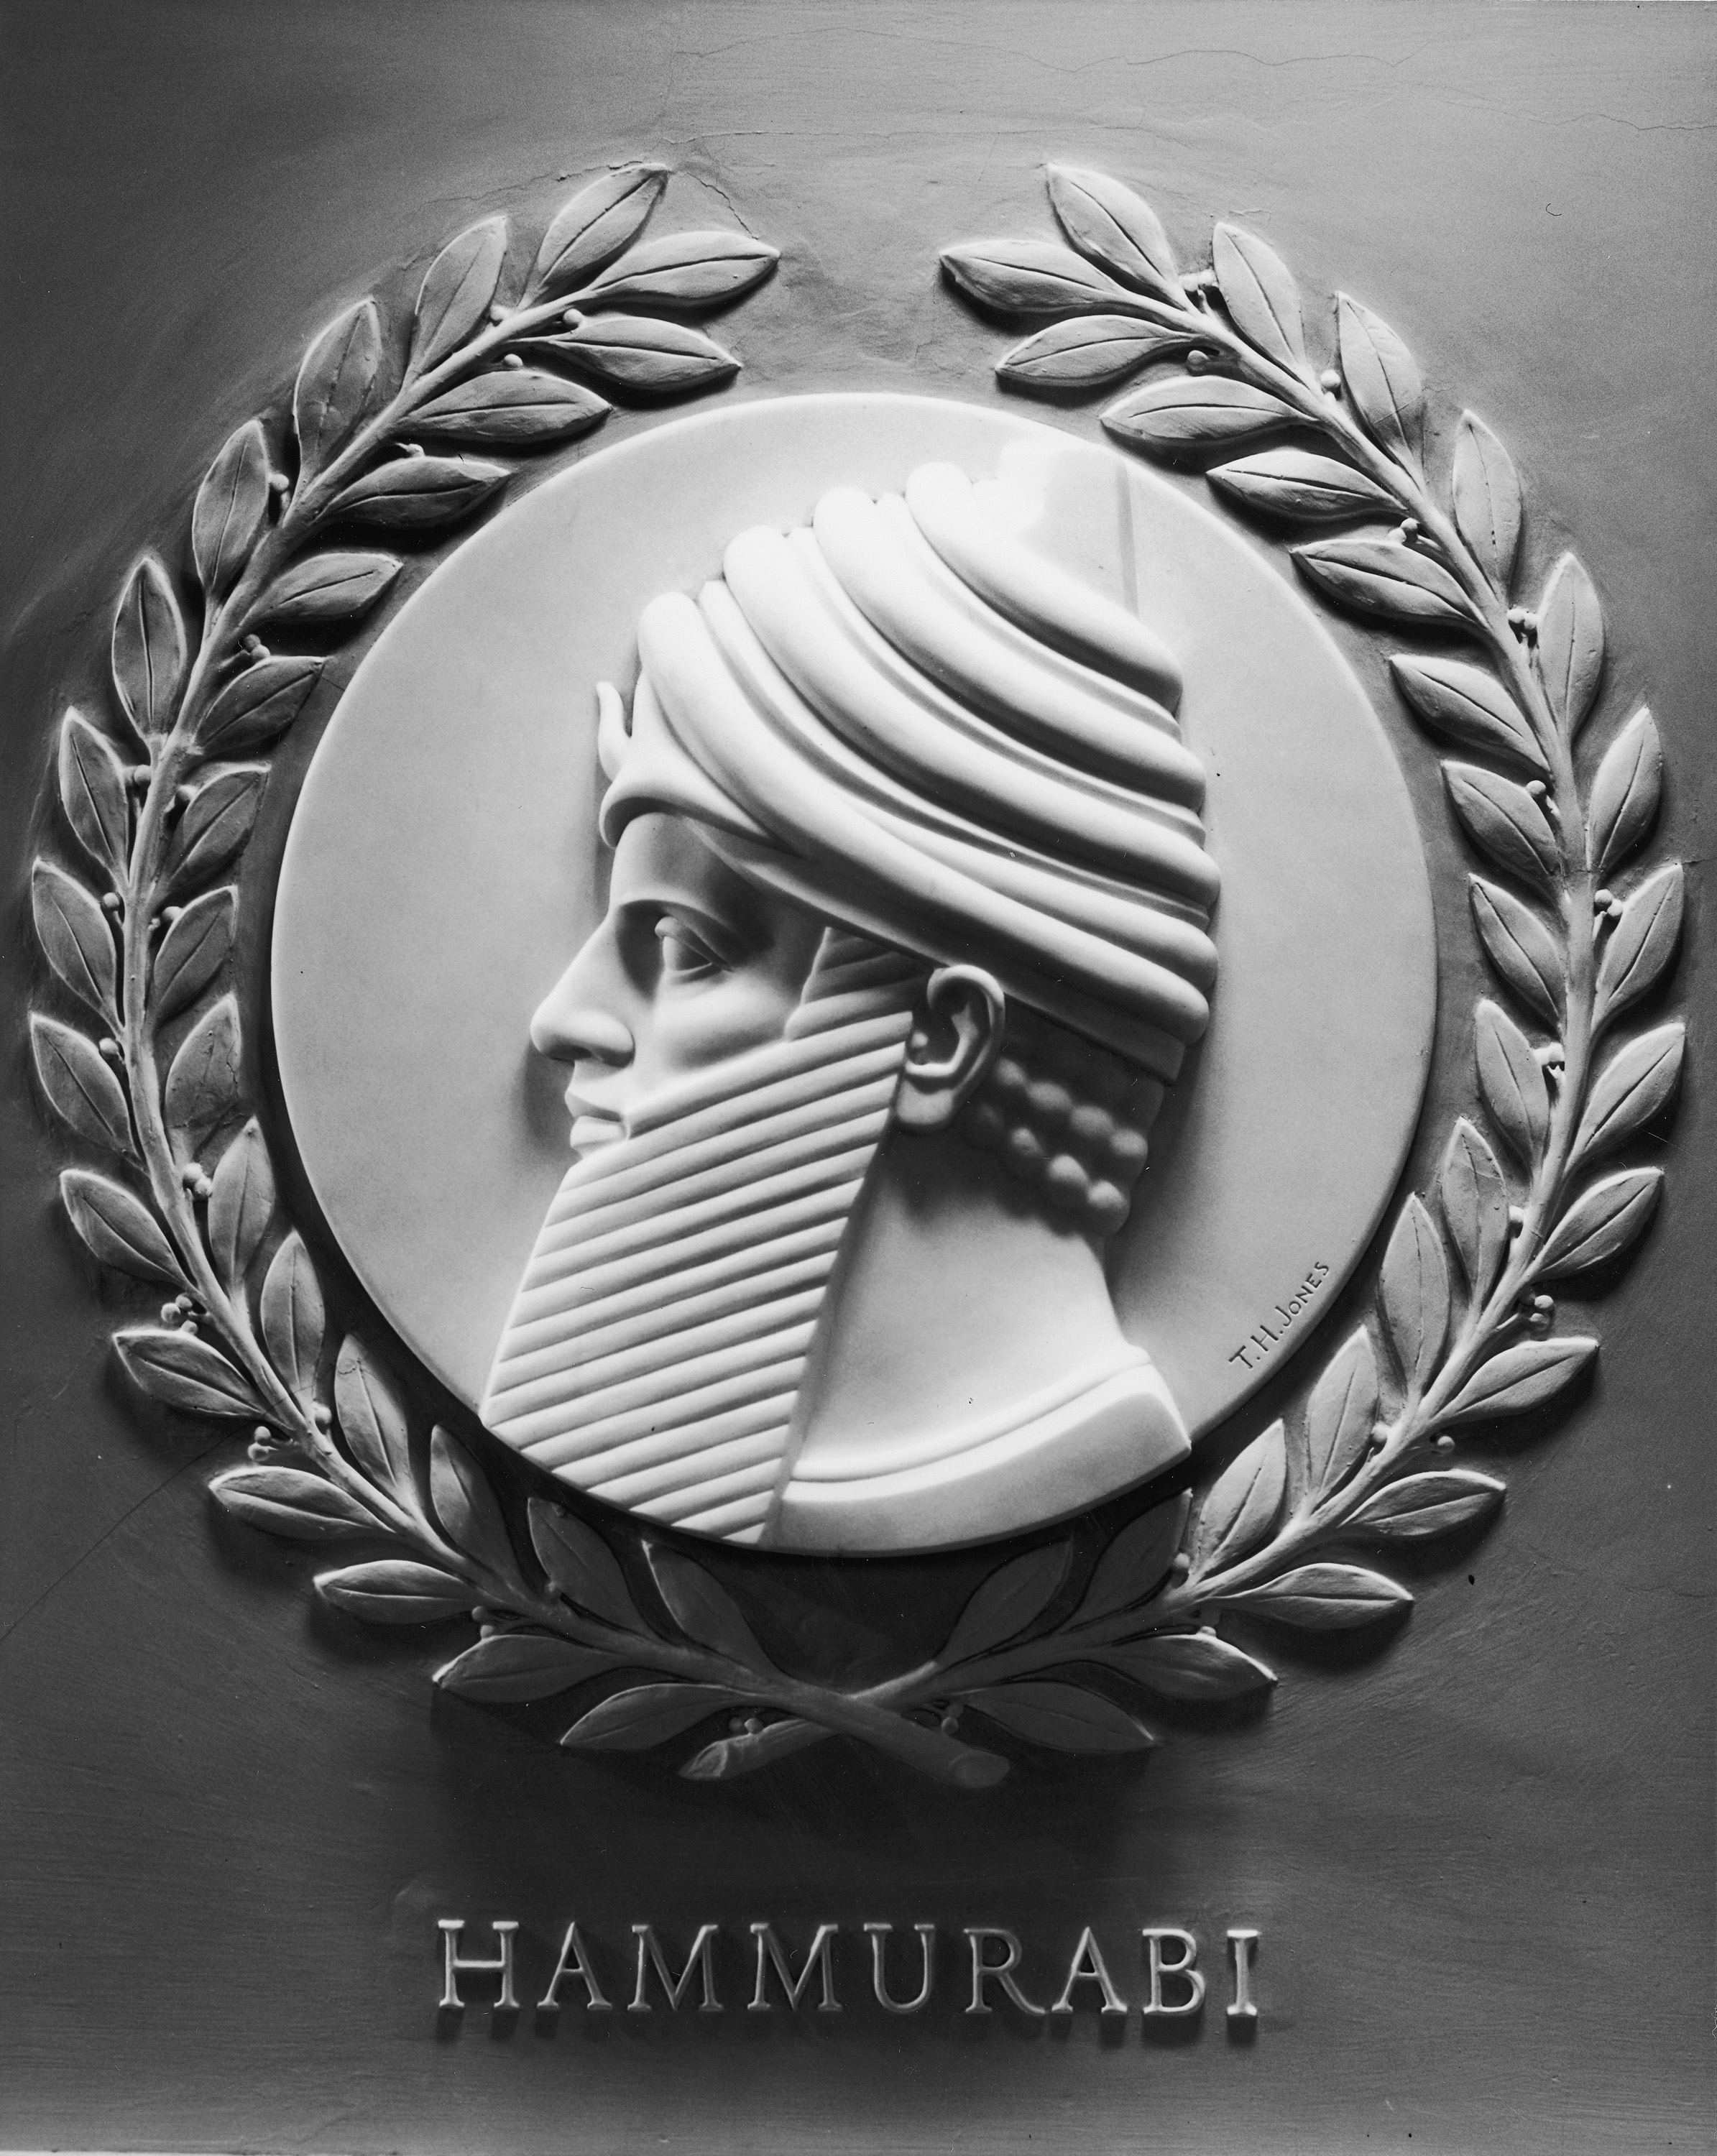 hammurabi the lawgiver Hammurabi the lawgiver between 1790 and 1750 bc hammurabi (hah»muh»rah«bee), king of the city-state of babylon, conquered and reunited most of mesopotamia and the upper valley of the tigris and euphrates rivers.